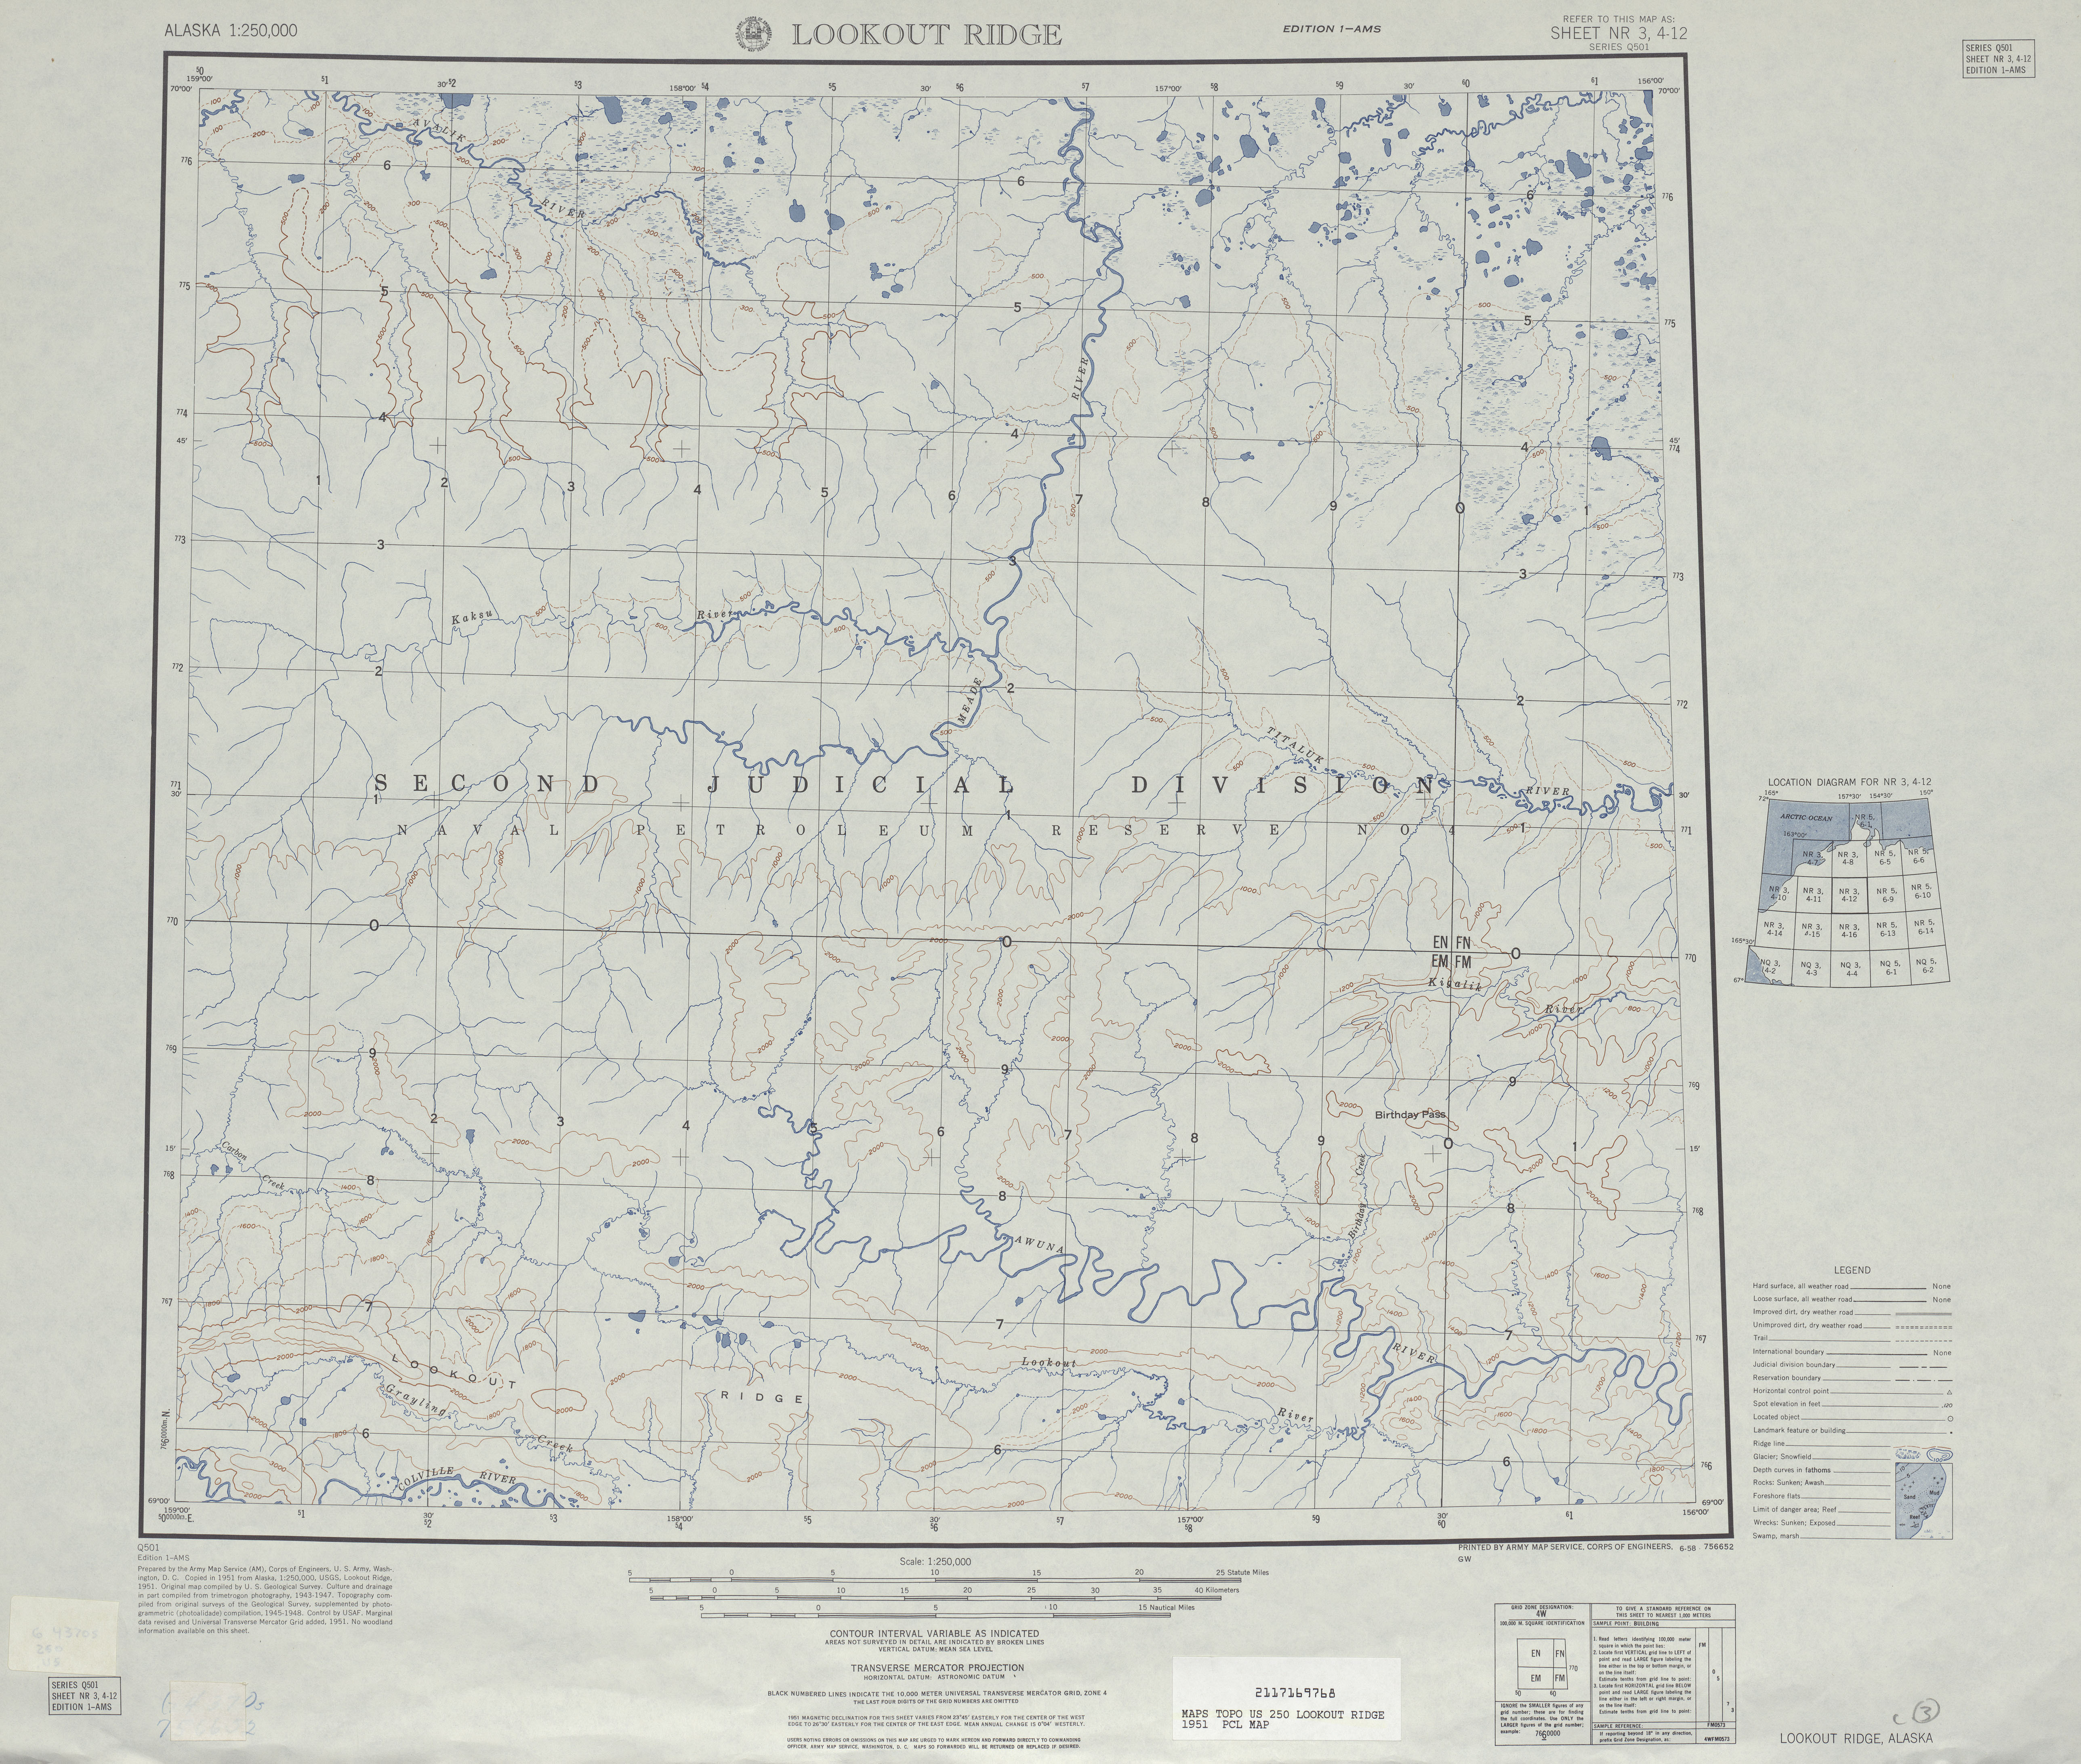 Lookout Ridge Topographic Map Sheet, United States 1951